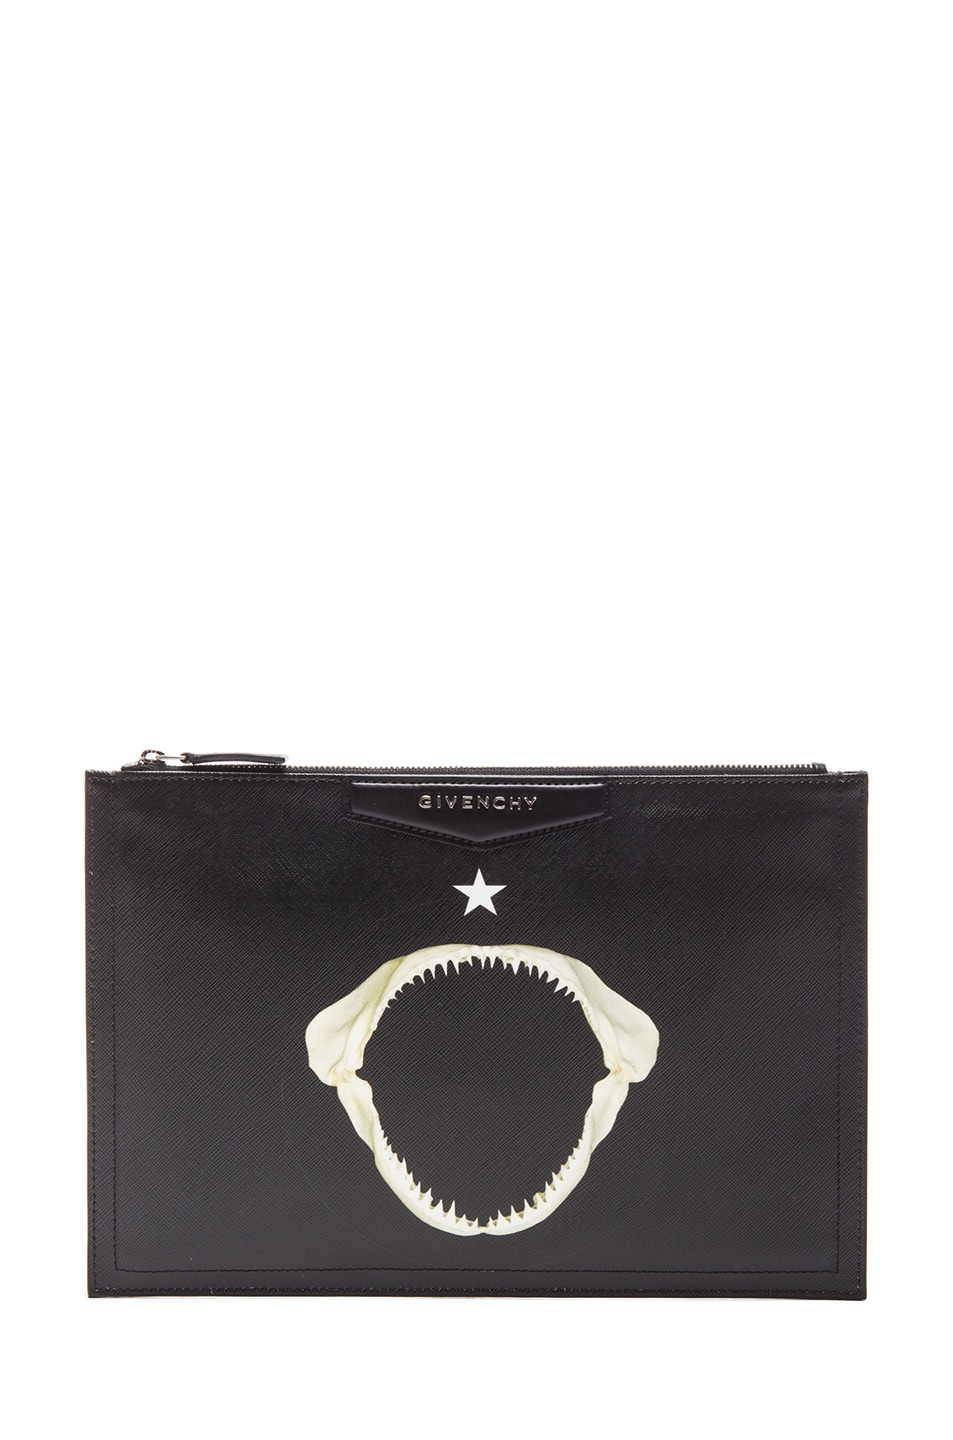 Image 1 of Givenchy Shark Jaw Antigona Zip Pouch in Multi 73f9bfb93f7a0